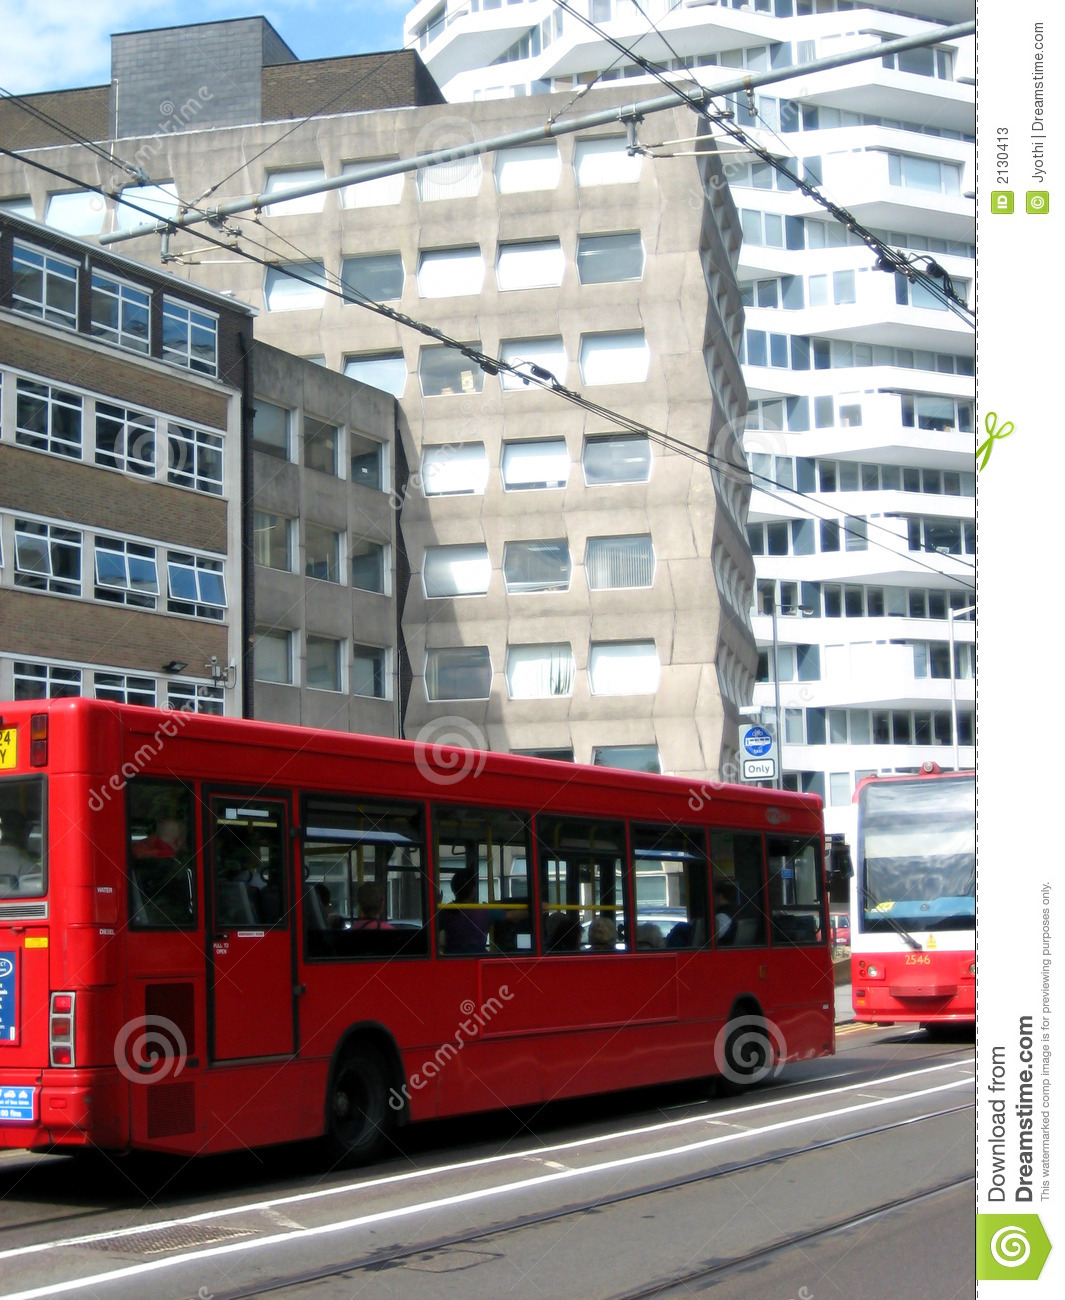 Red bus and tram line